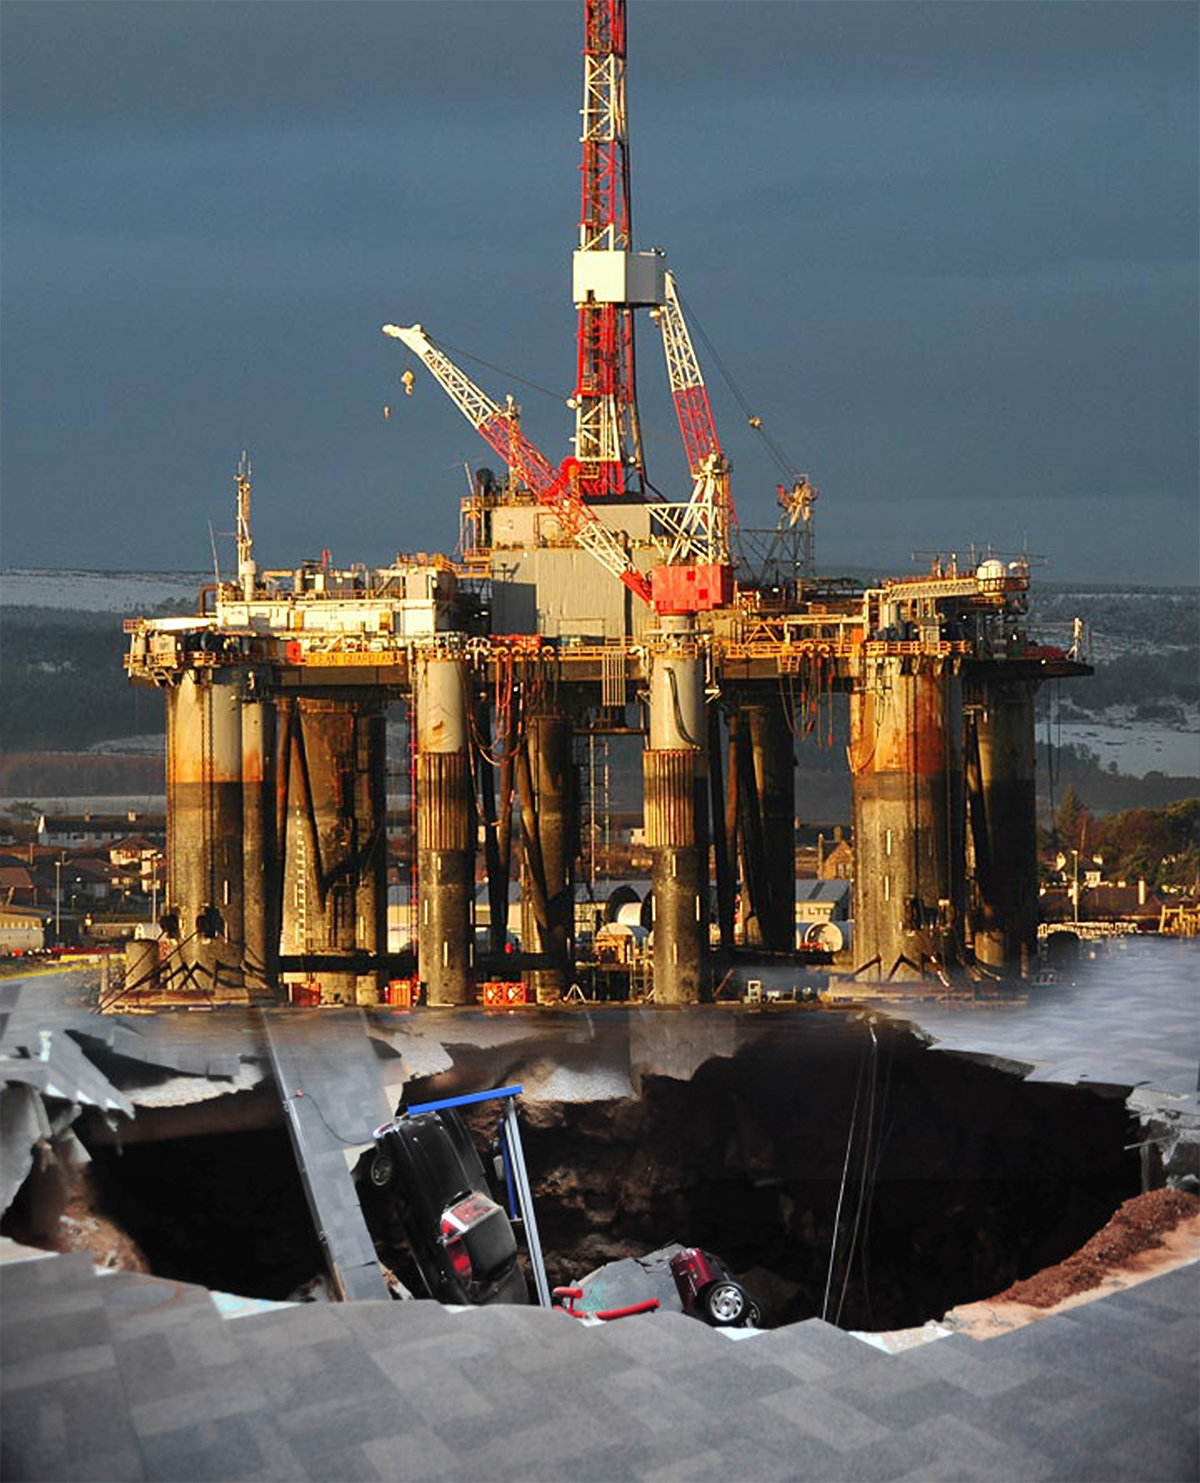 Drilling our way to the other side?.jpg